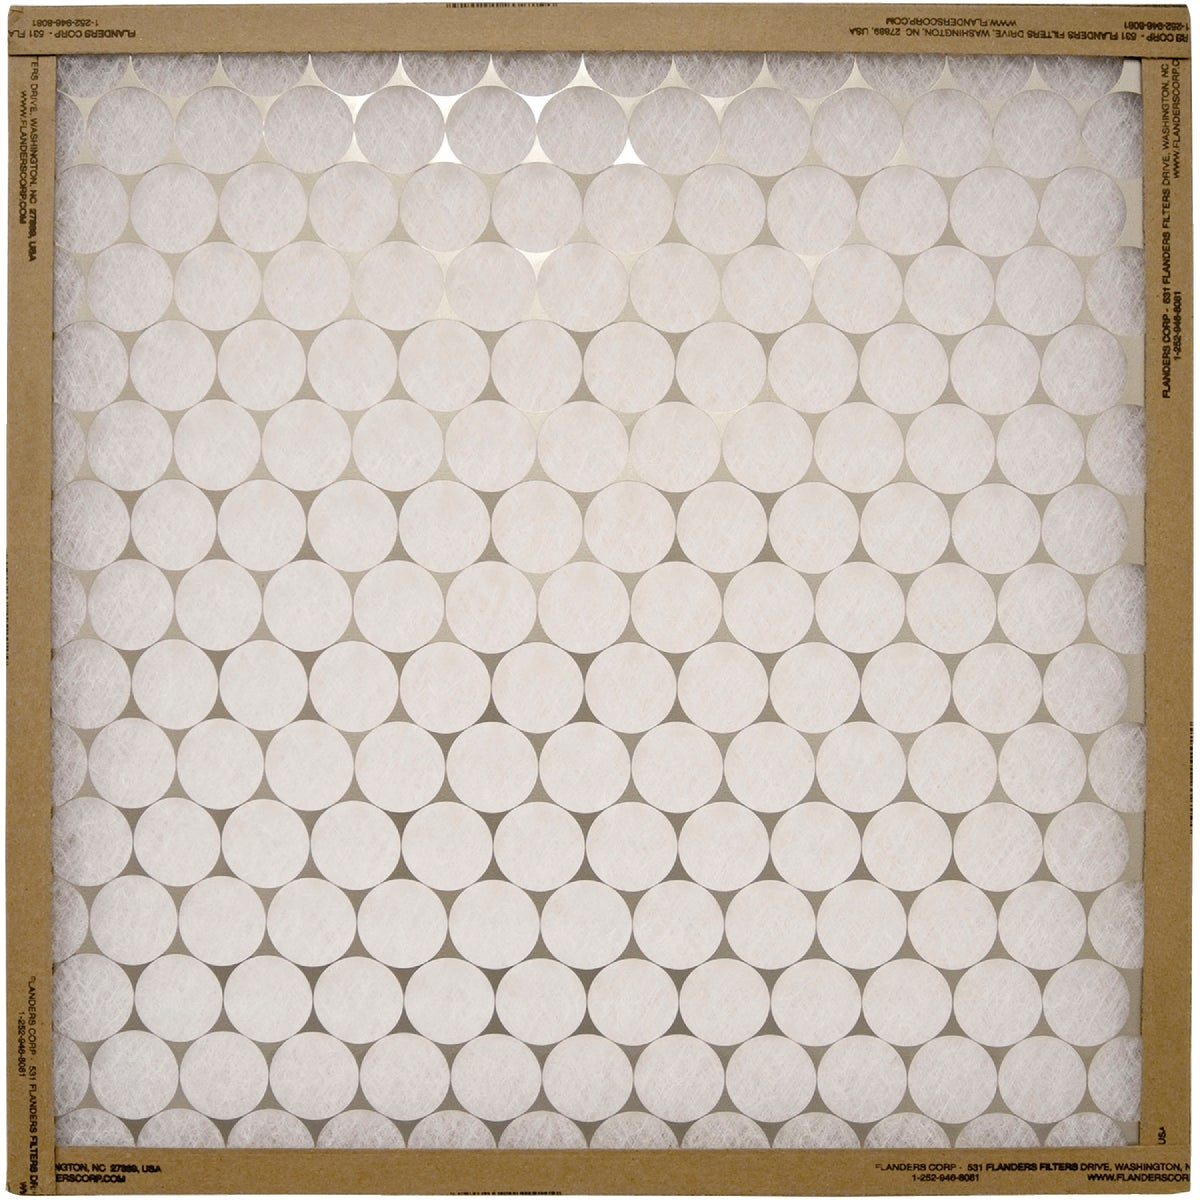 12X24 FURNACE FILTER - 10255.011224 by Flanders Corp